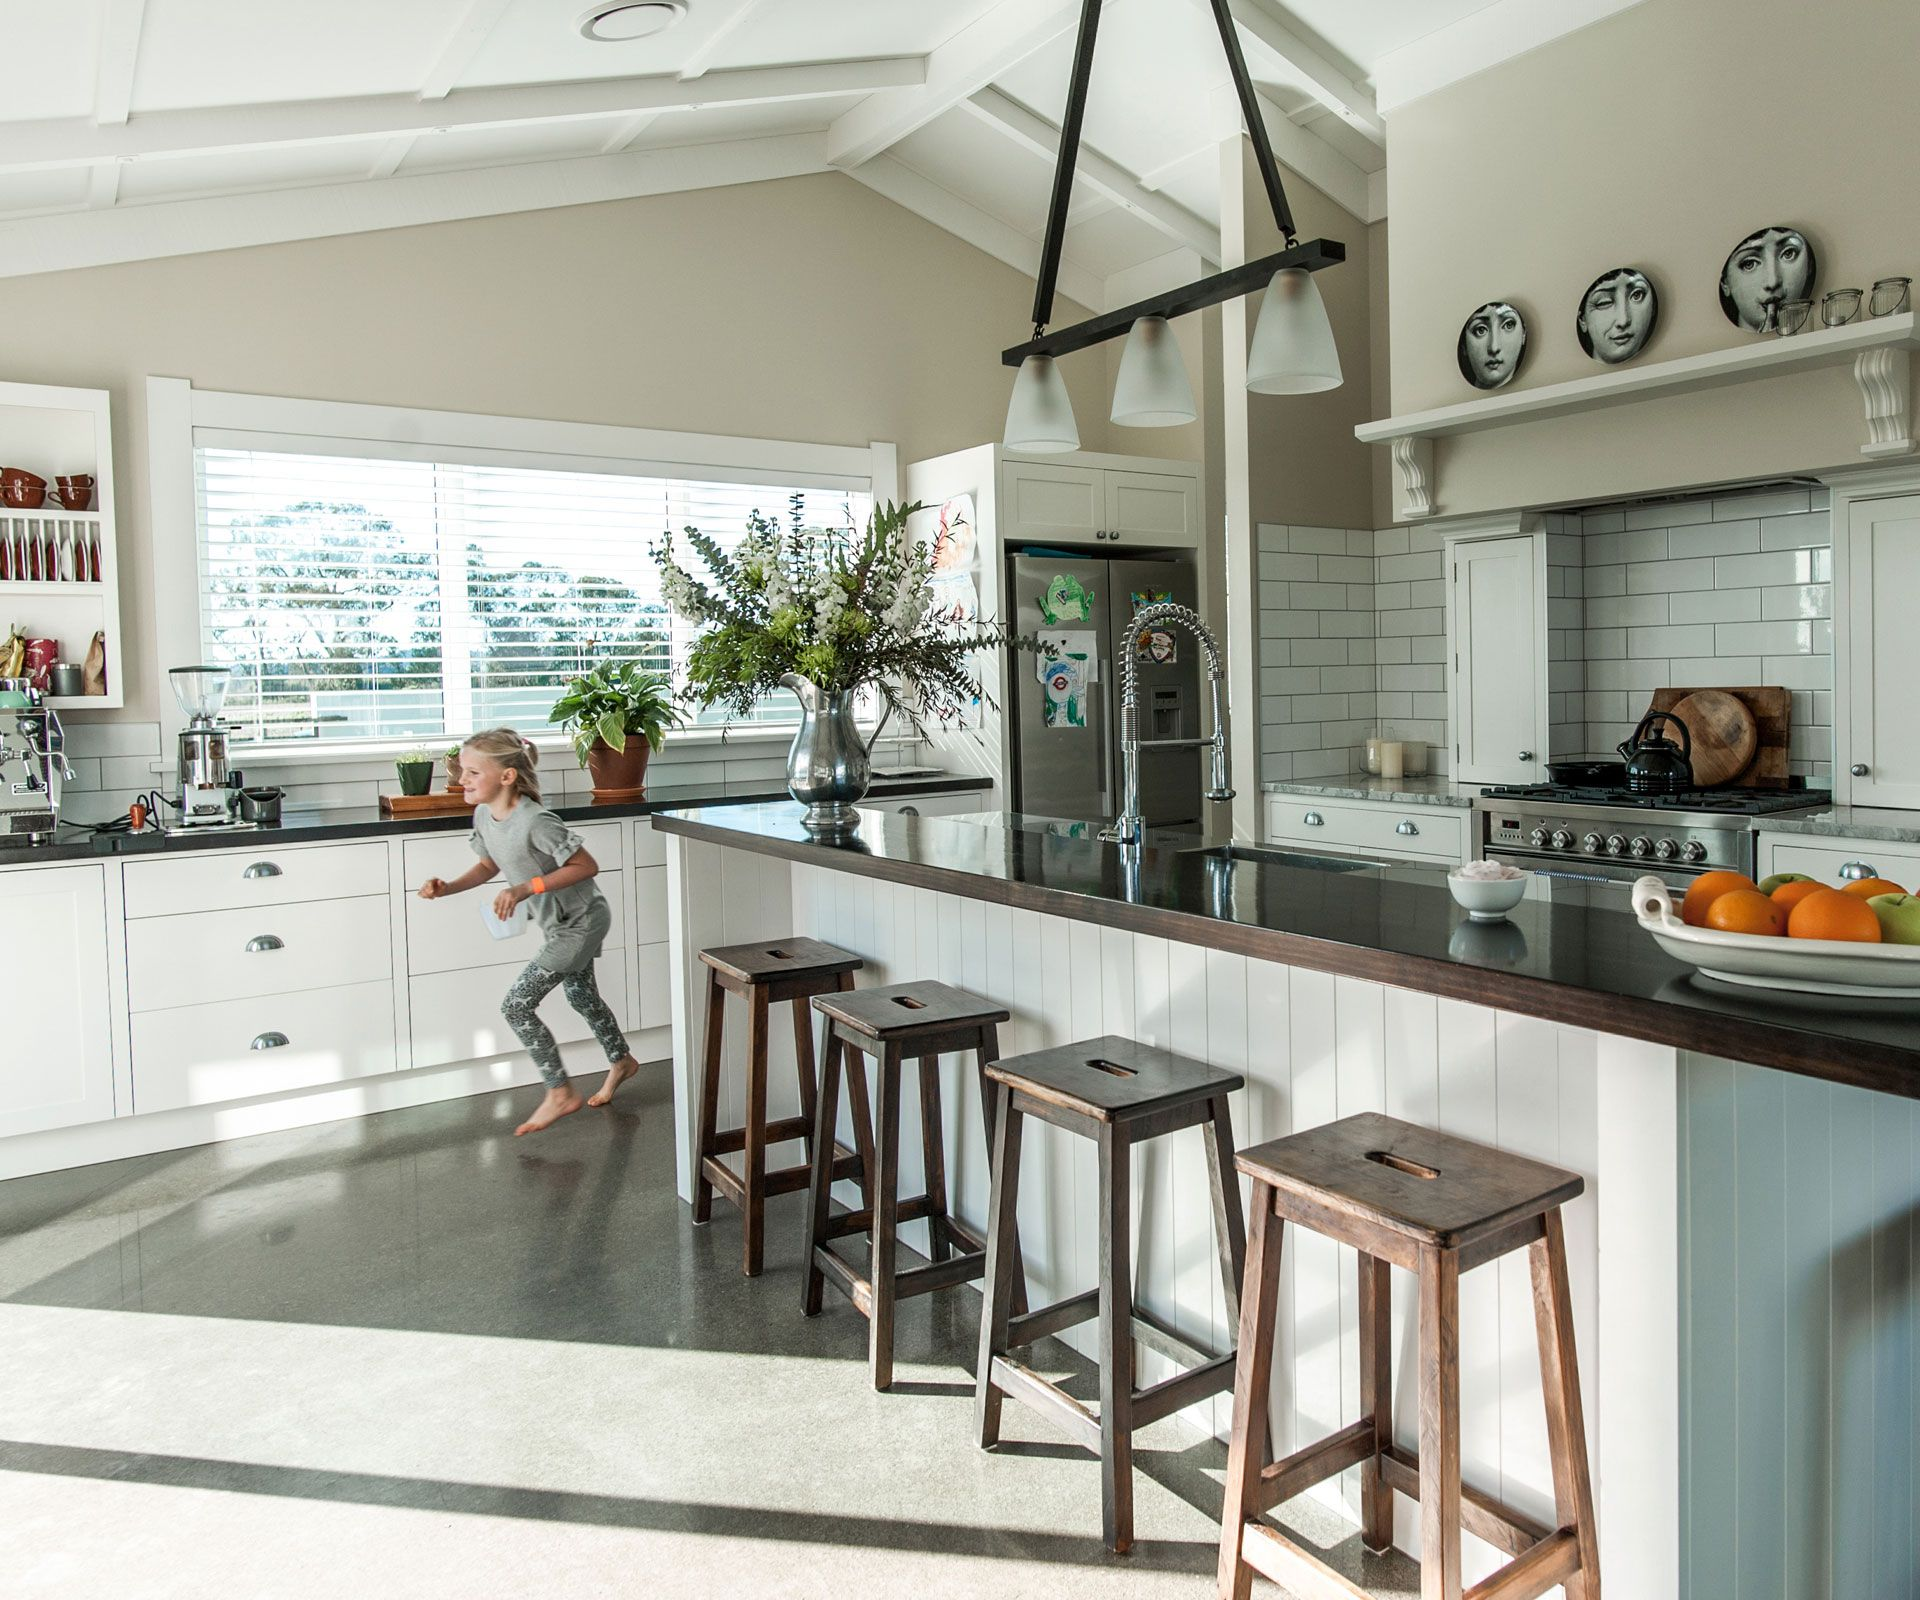 This family home in Havelock North proves newbuilds can